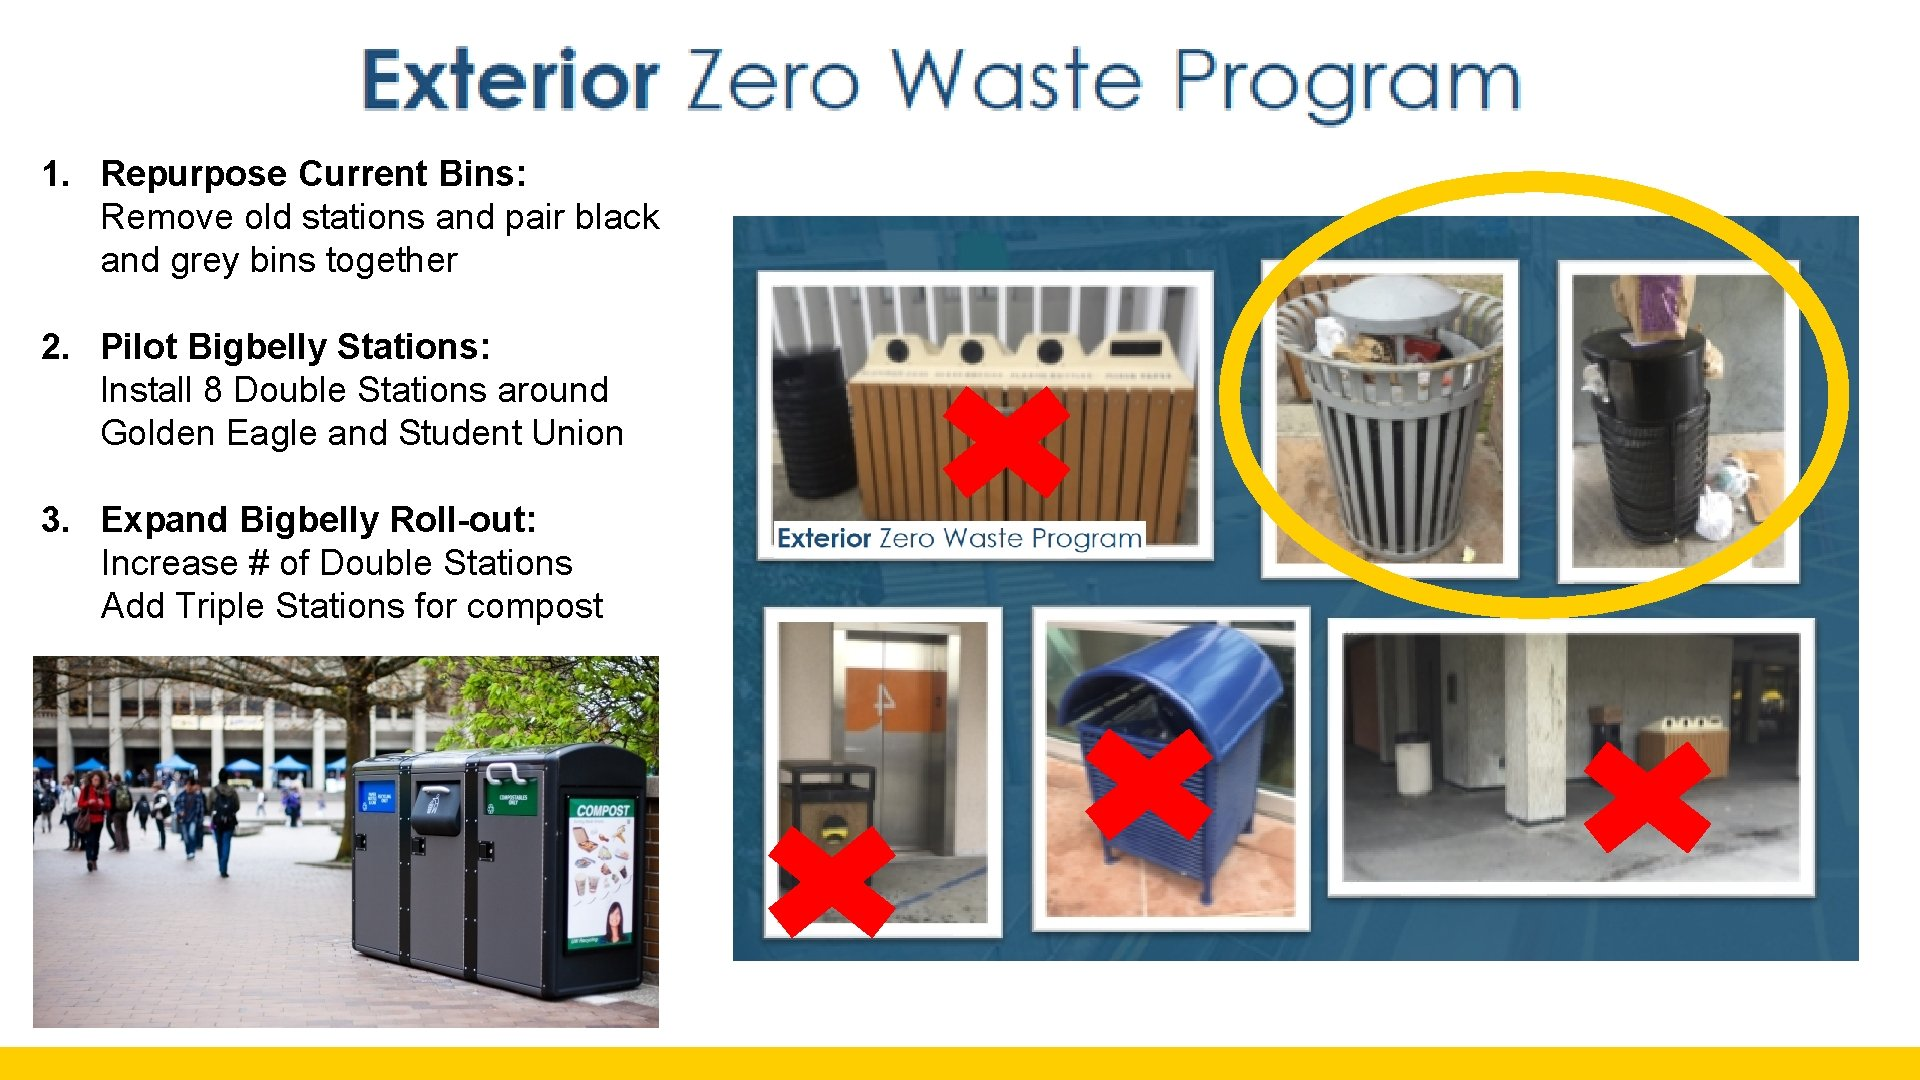 1. Repurpose Current Bins: Remove old stations and pair black and grey bins together